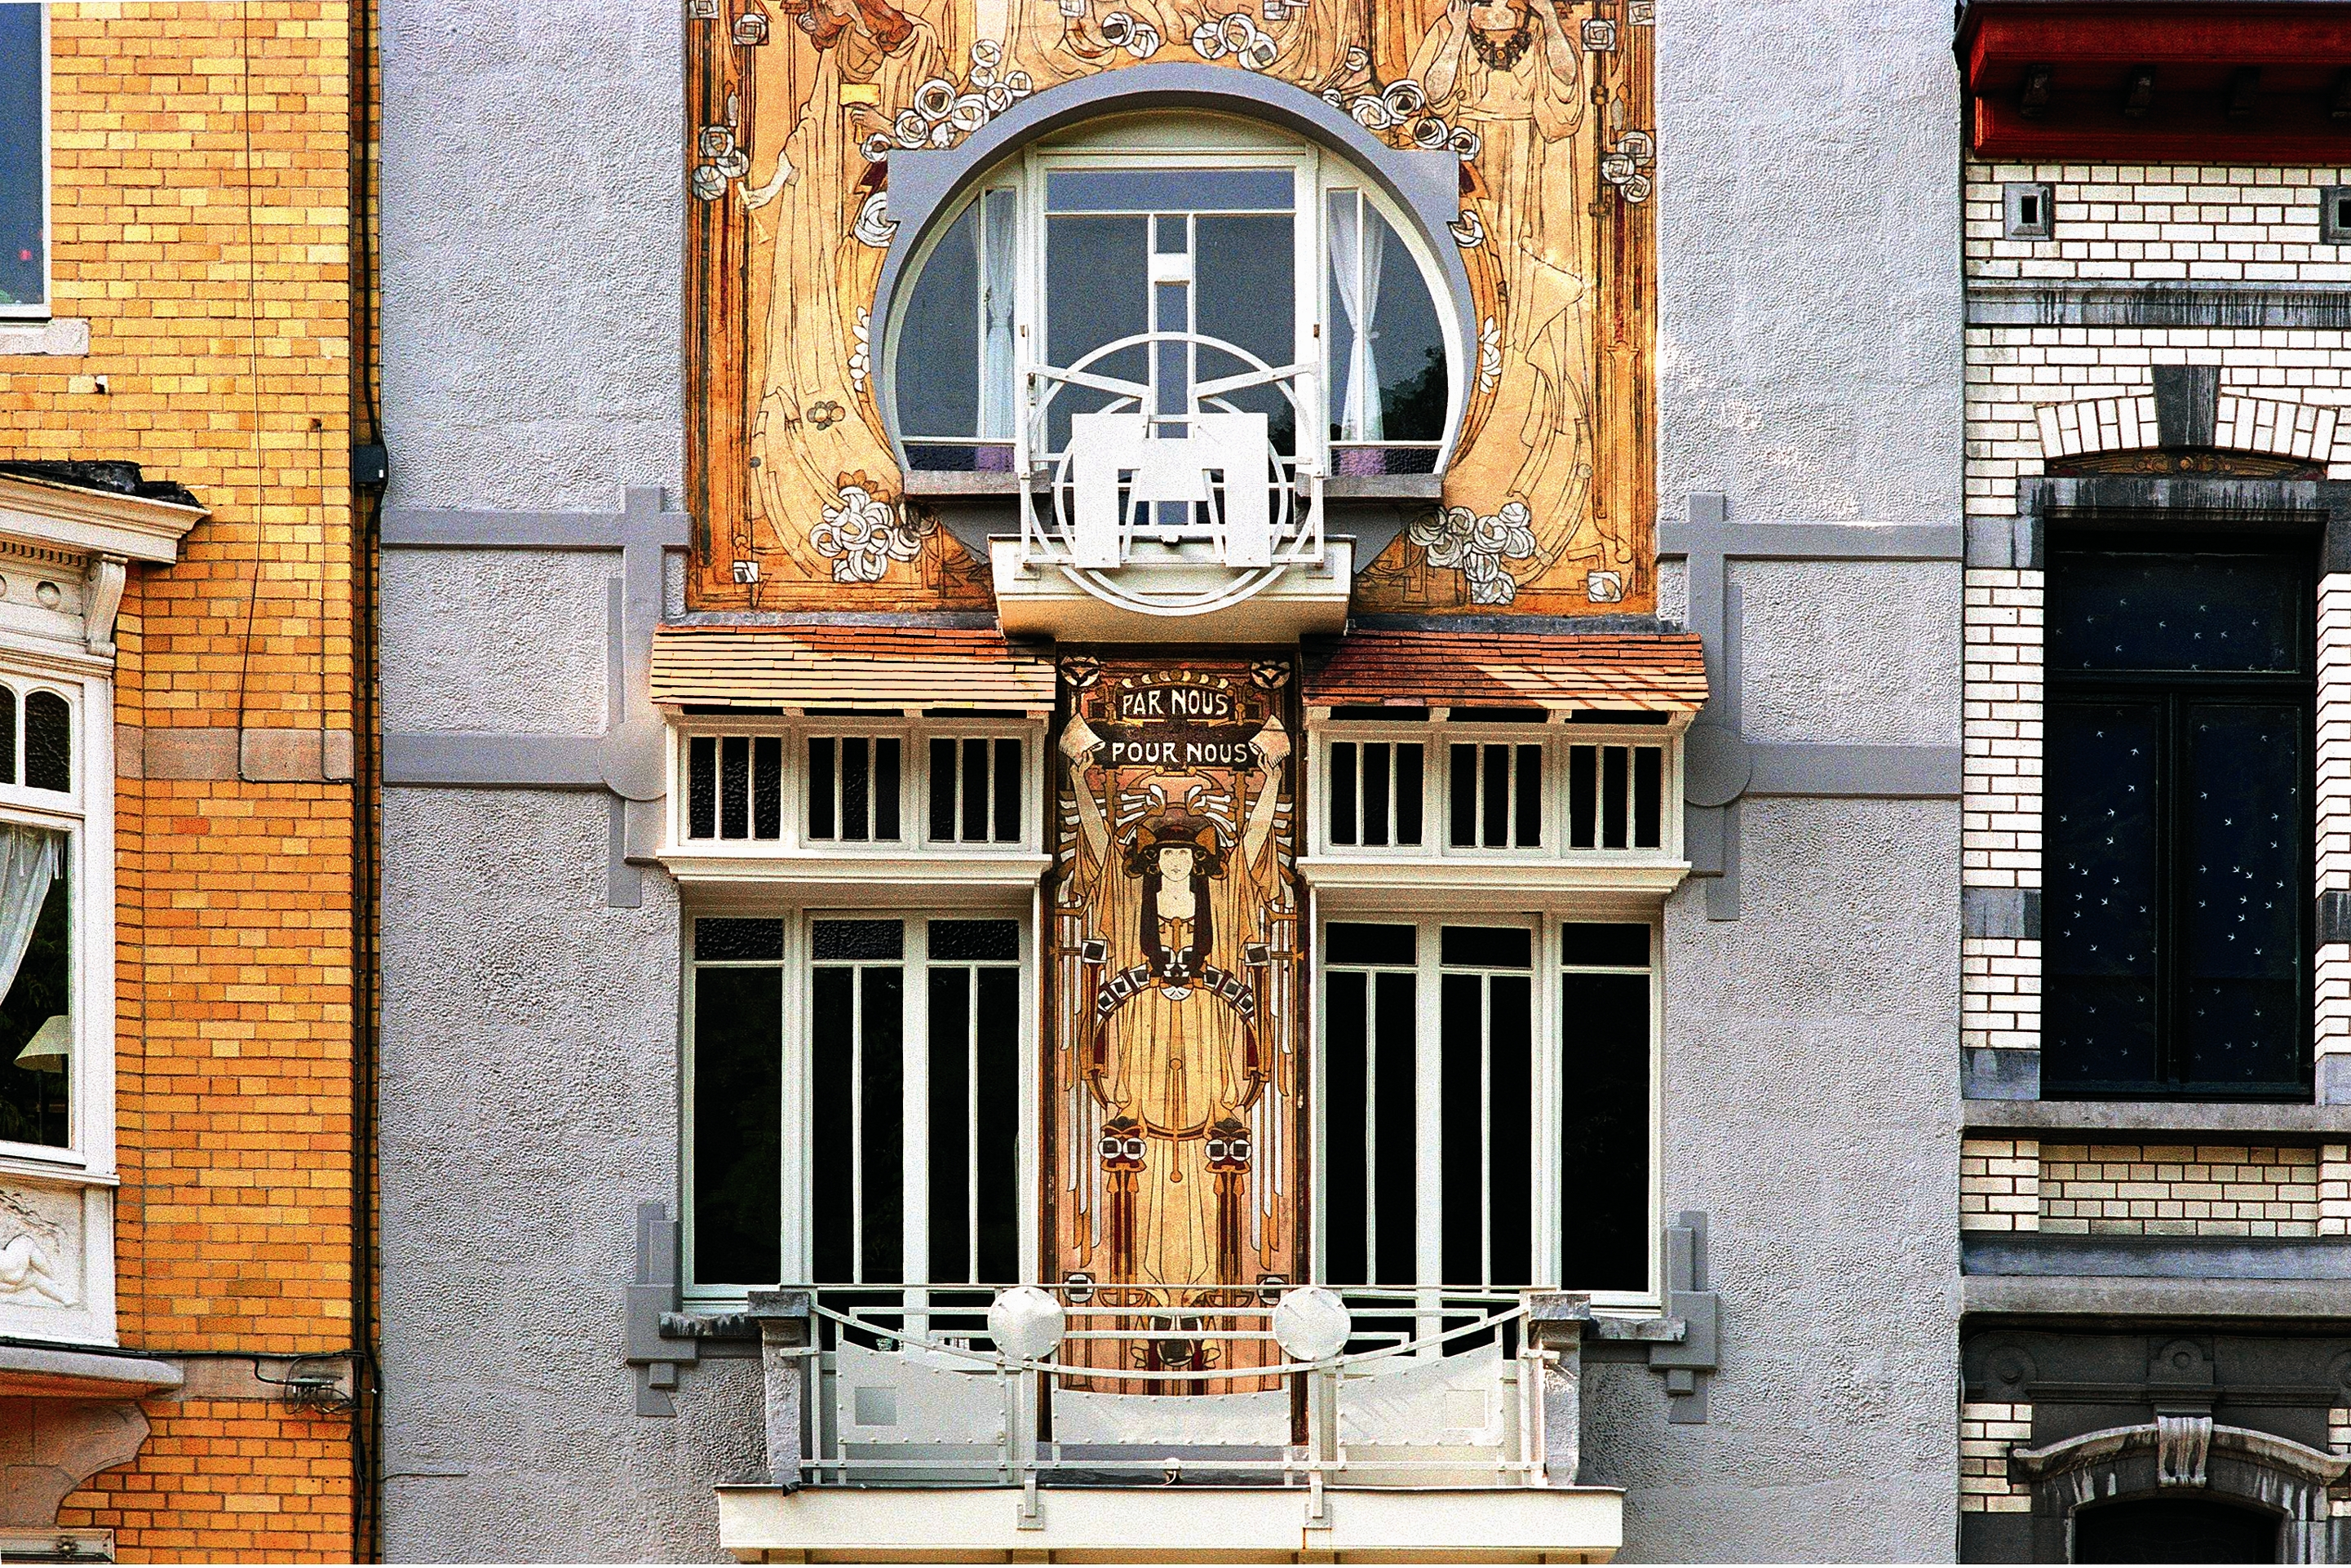 Brussels art nouveau masterpieces tammy tour guide for Nouvelle deco maison